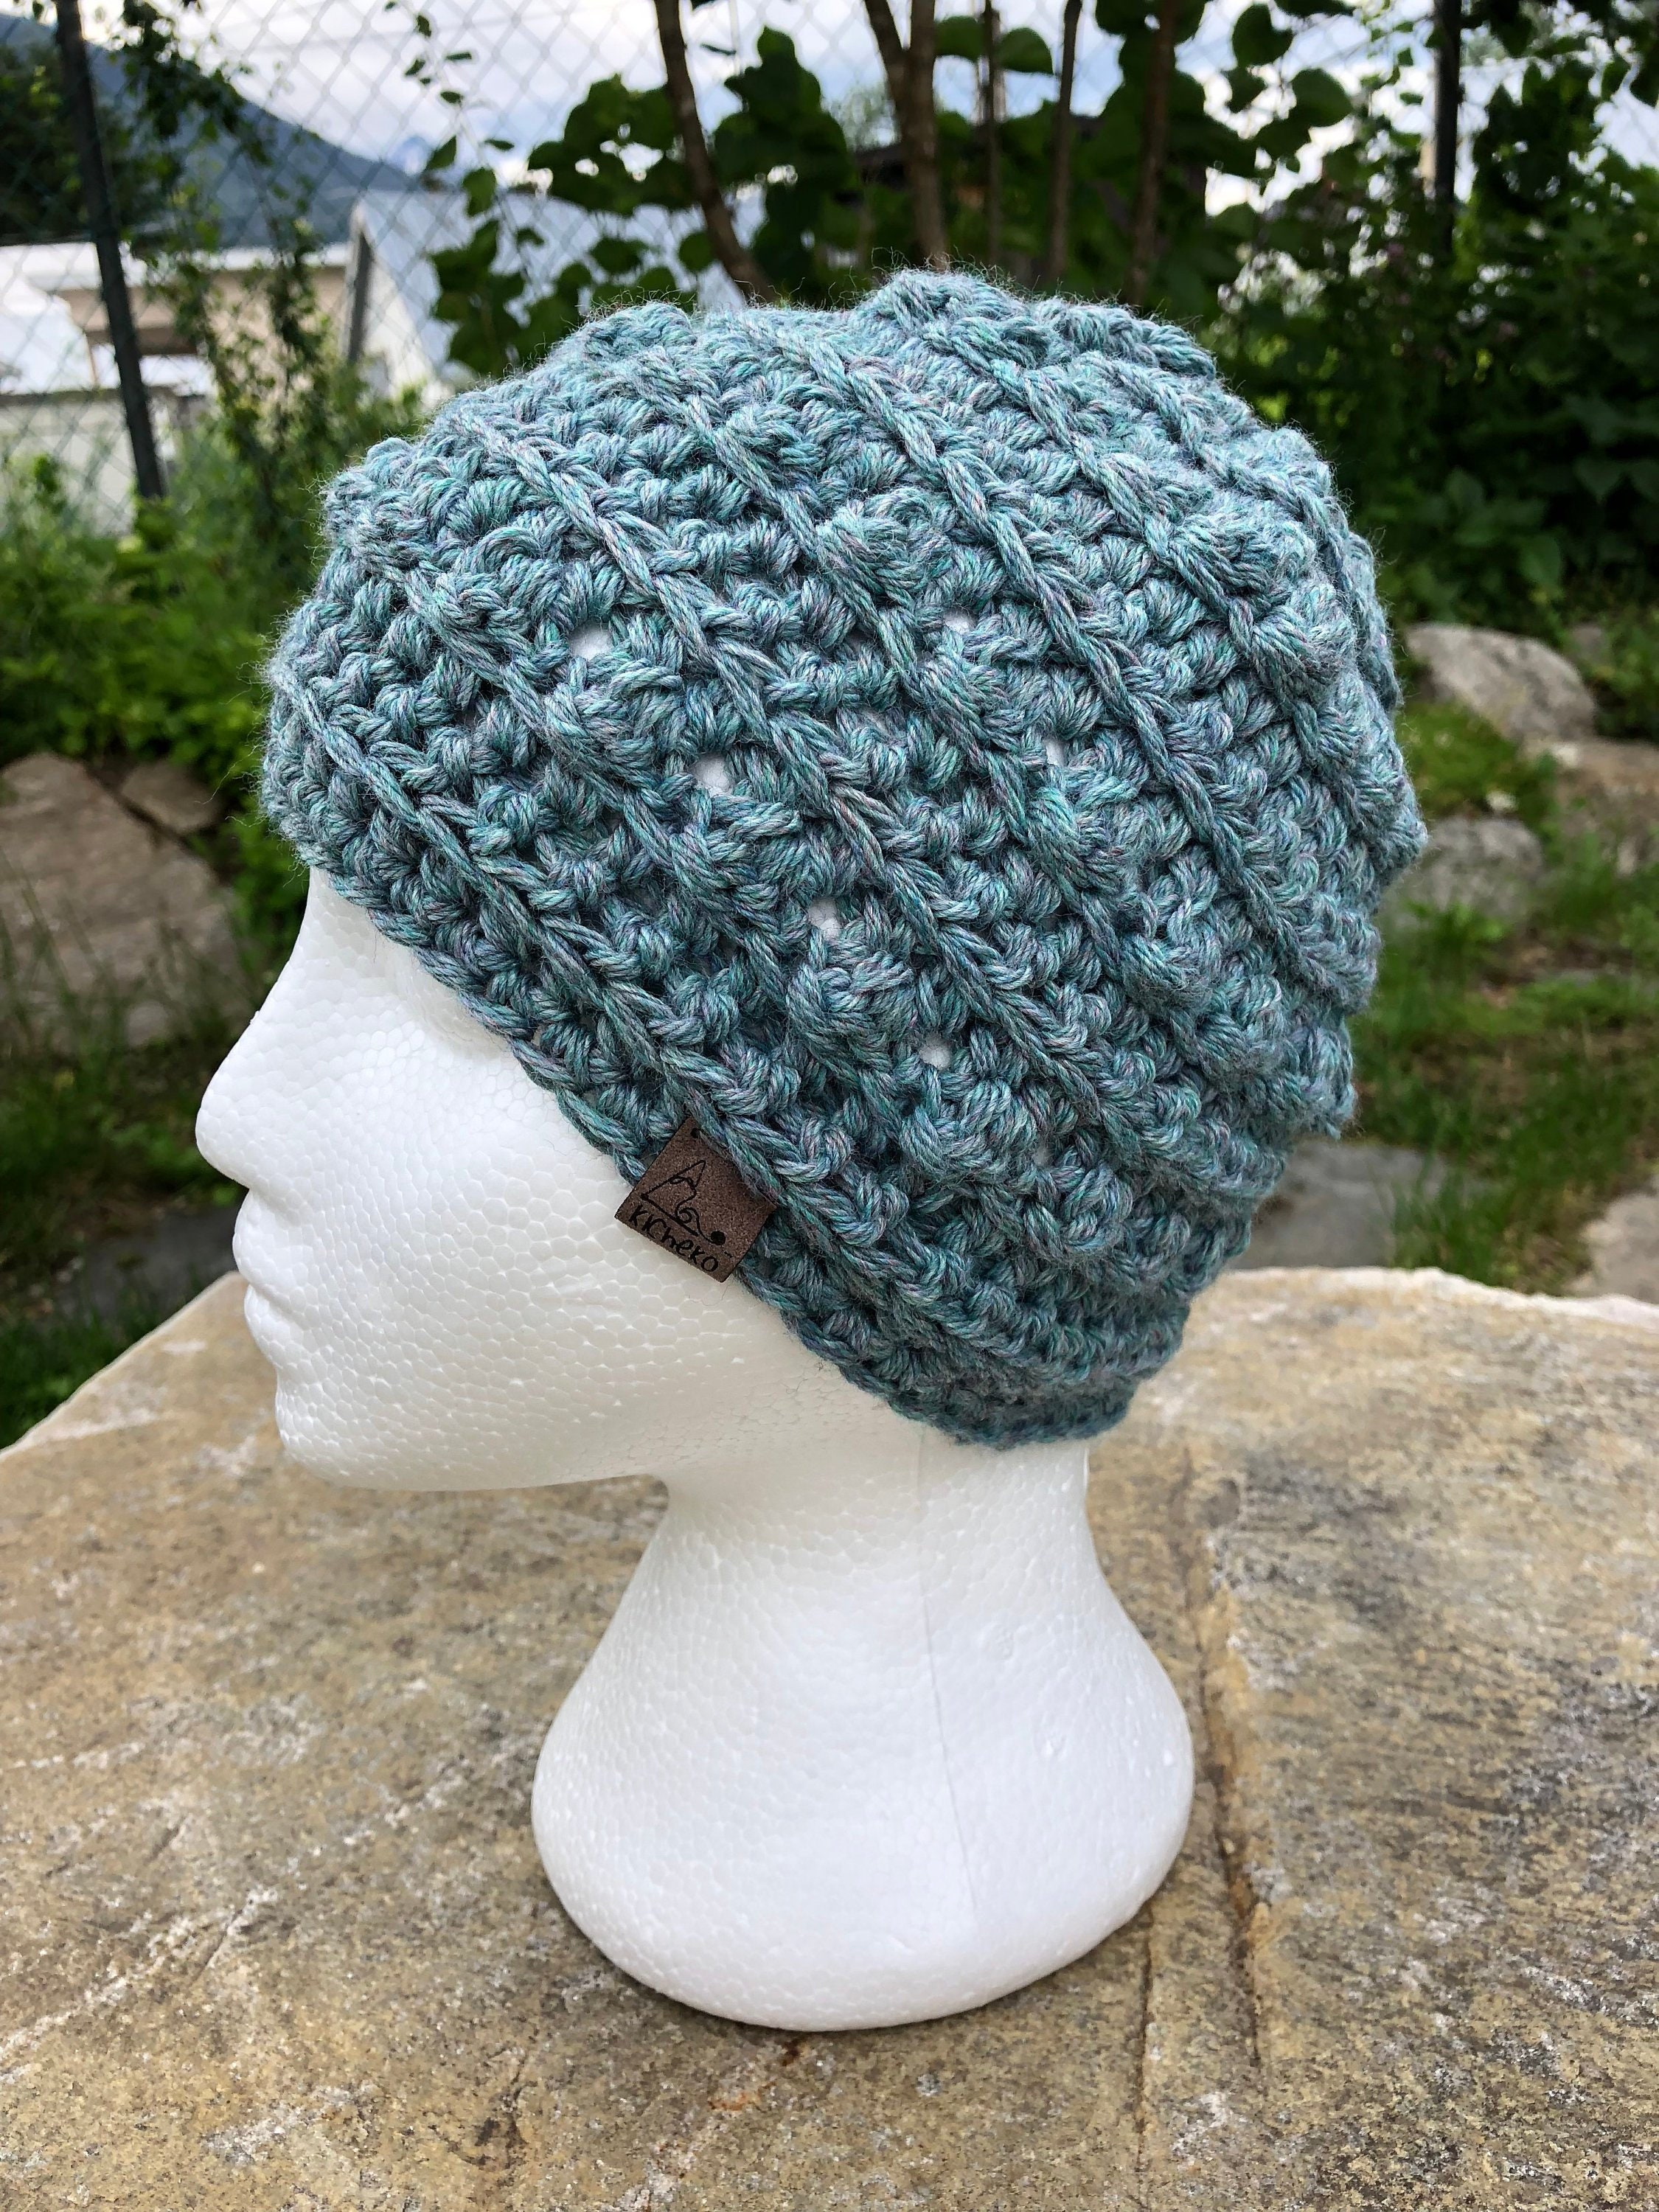 bd52e5d1ce0 Bobble Toboggan Beanie   Newborn ~ Baby ~ Toddler ~ Adult   Bobble hat    Bobble Head Beanie   Super Soft Beanie   Crochet Bobble Stitch Hat